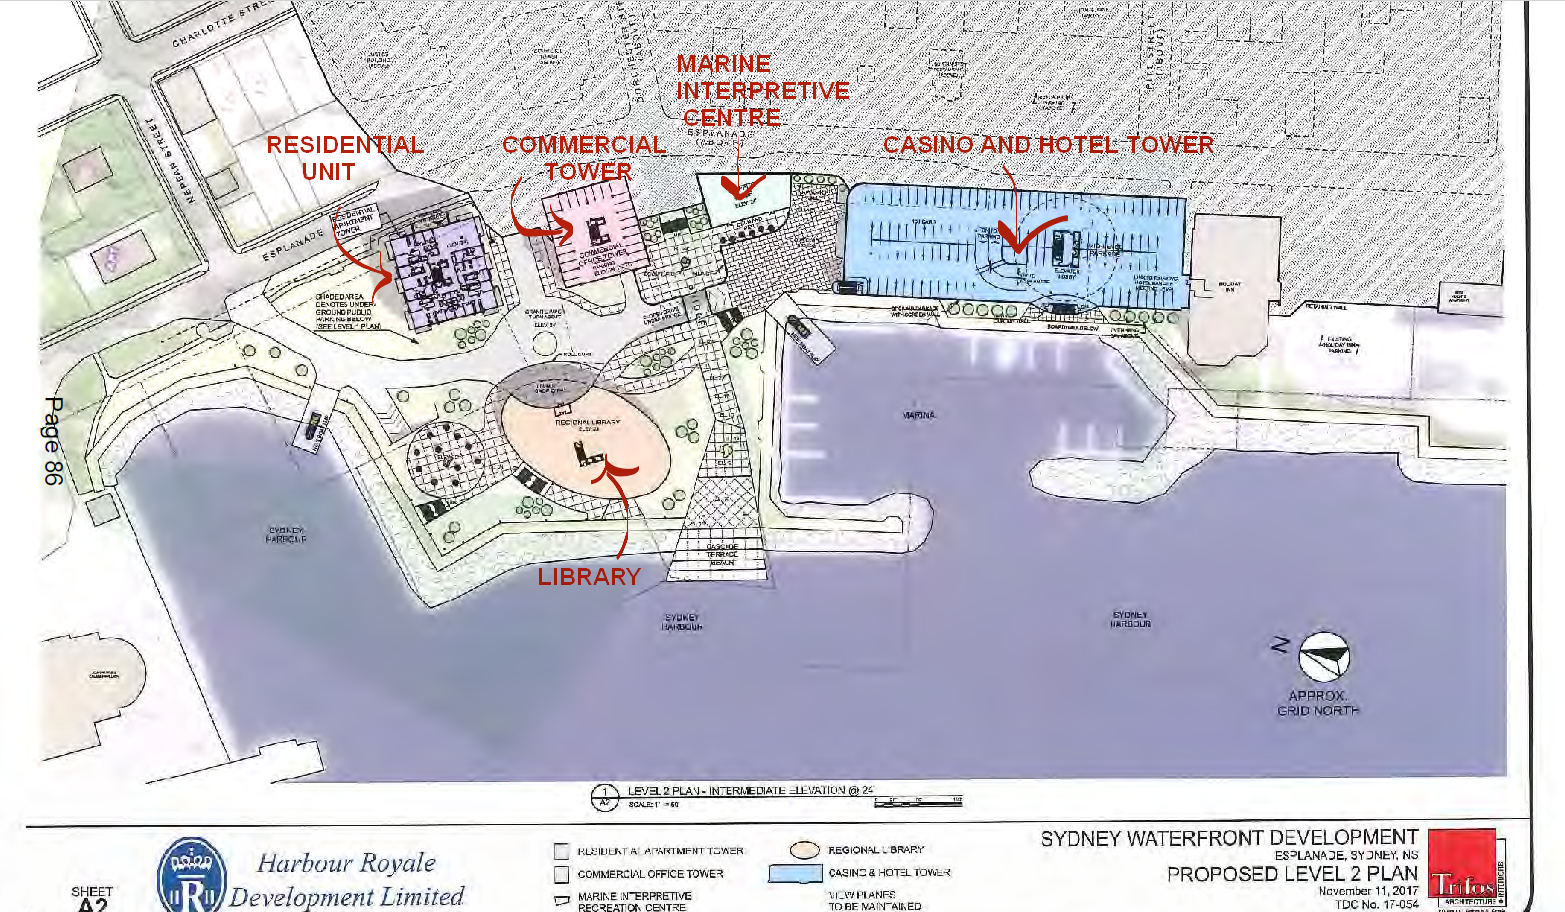 Harbour Royale Development Ltd's Sydney waterfront plan.